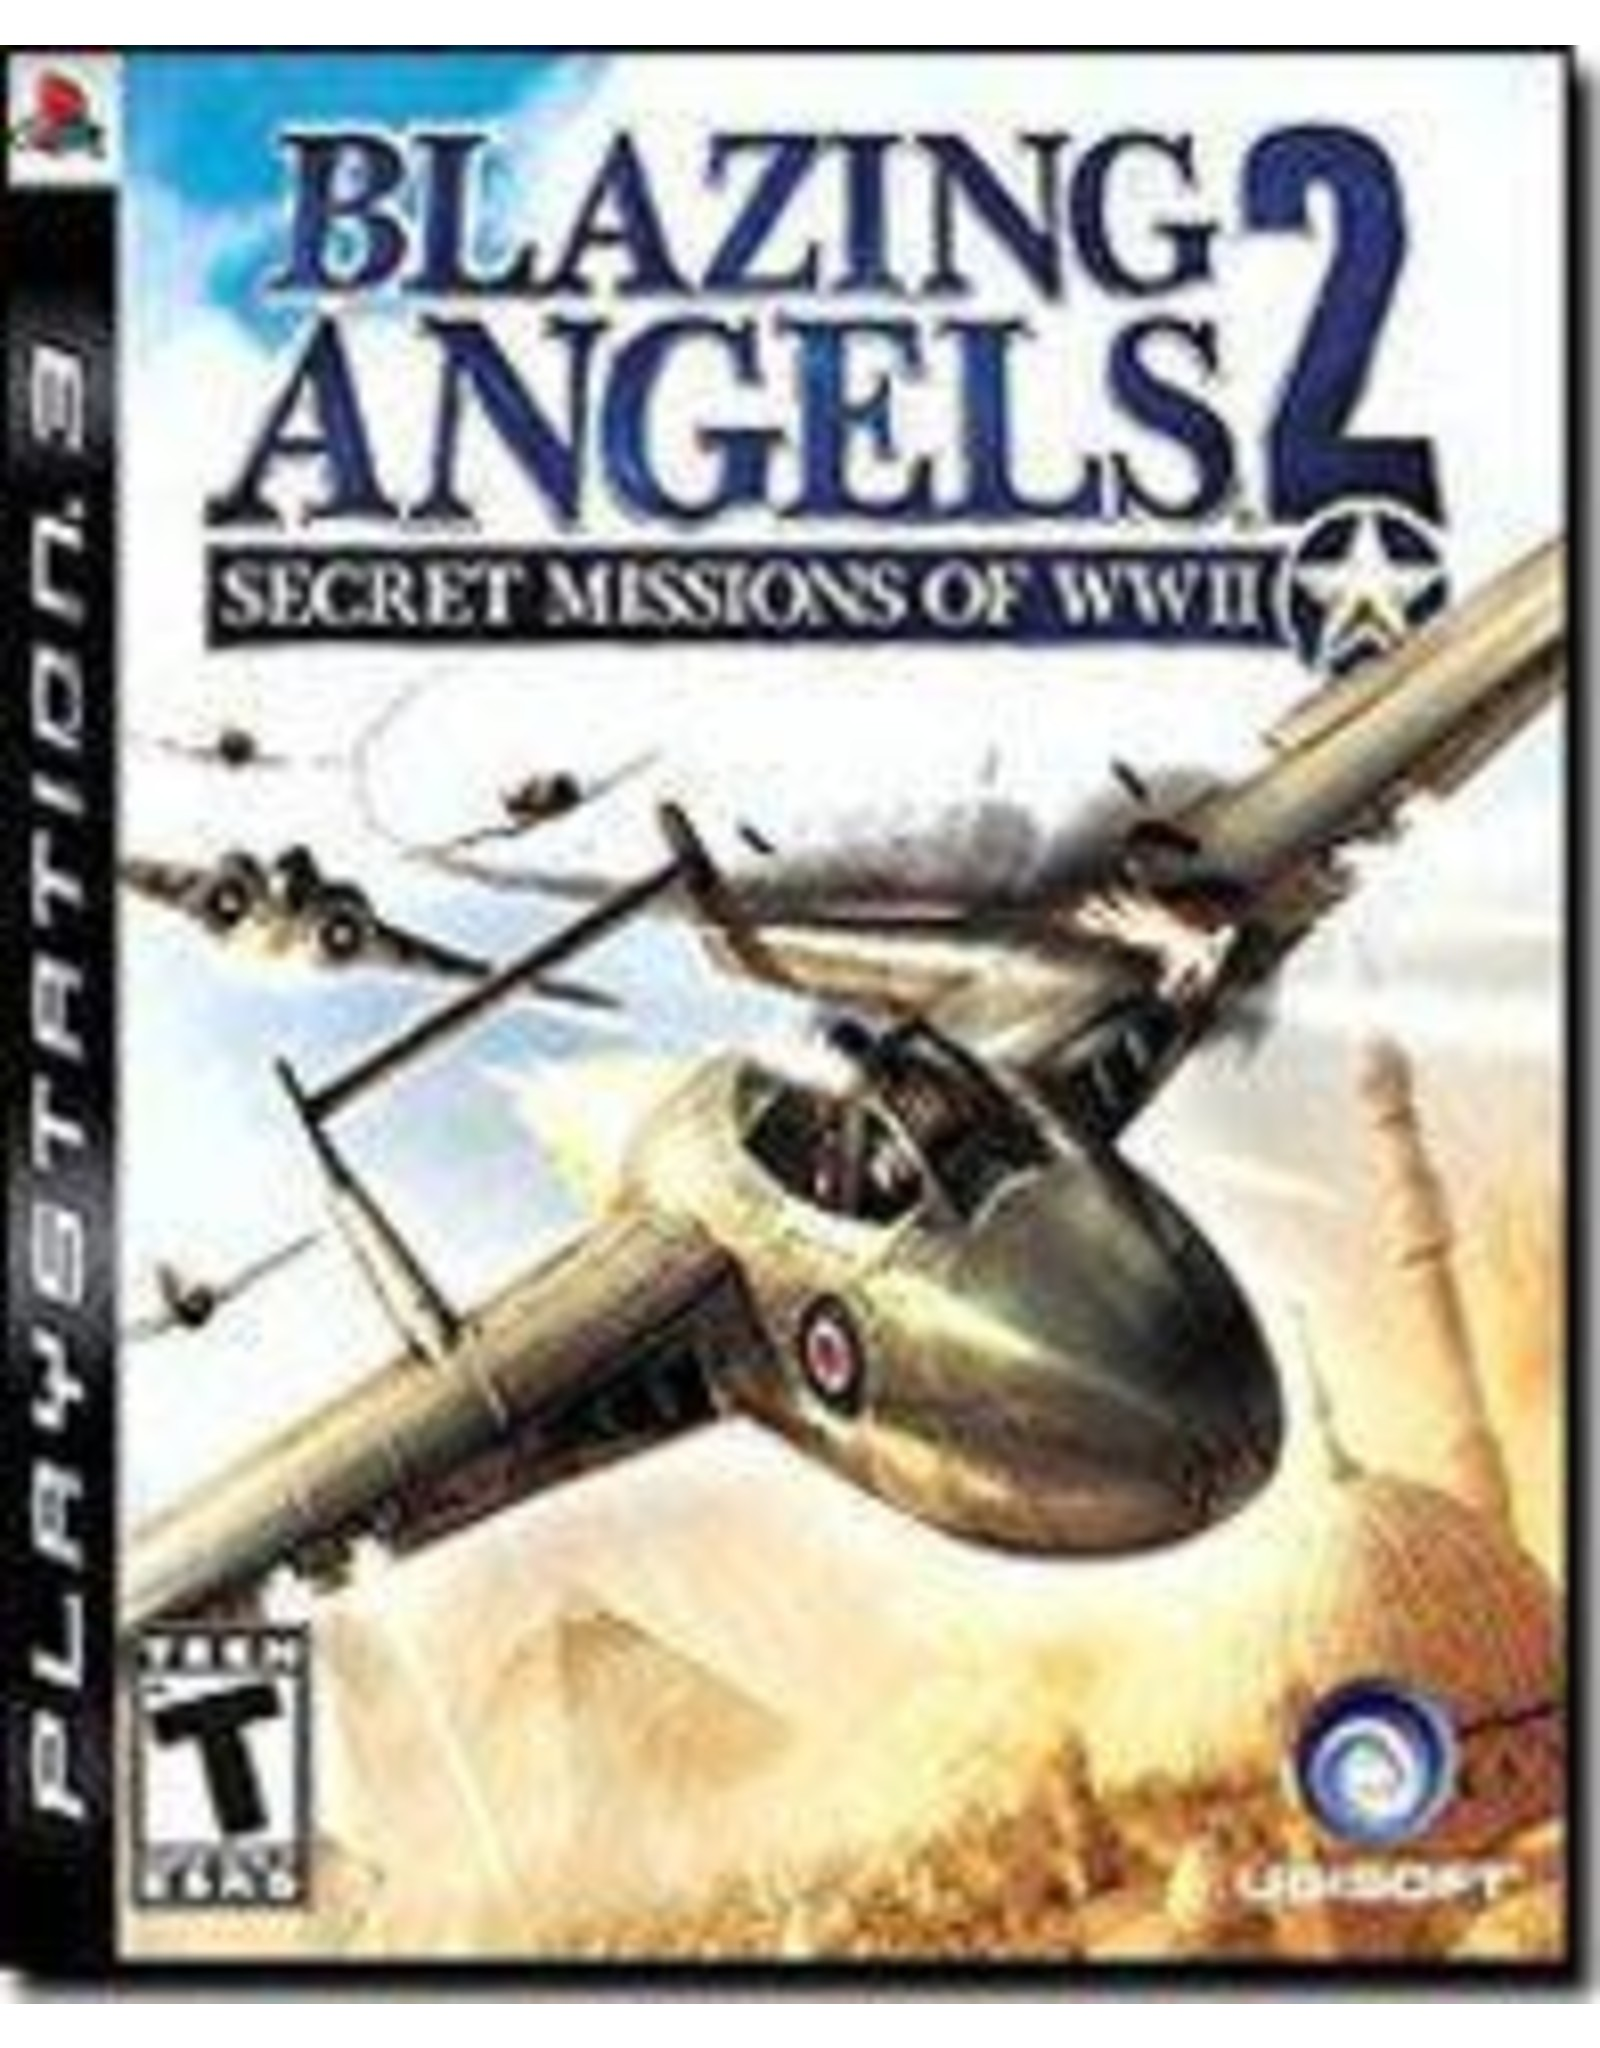 Playstation 3 Blazing Angels 2 Secret Missions of WWII (CiB)